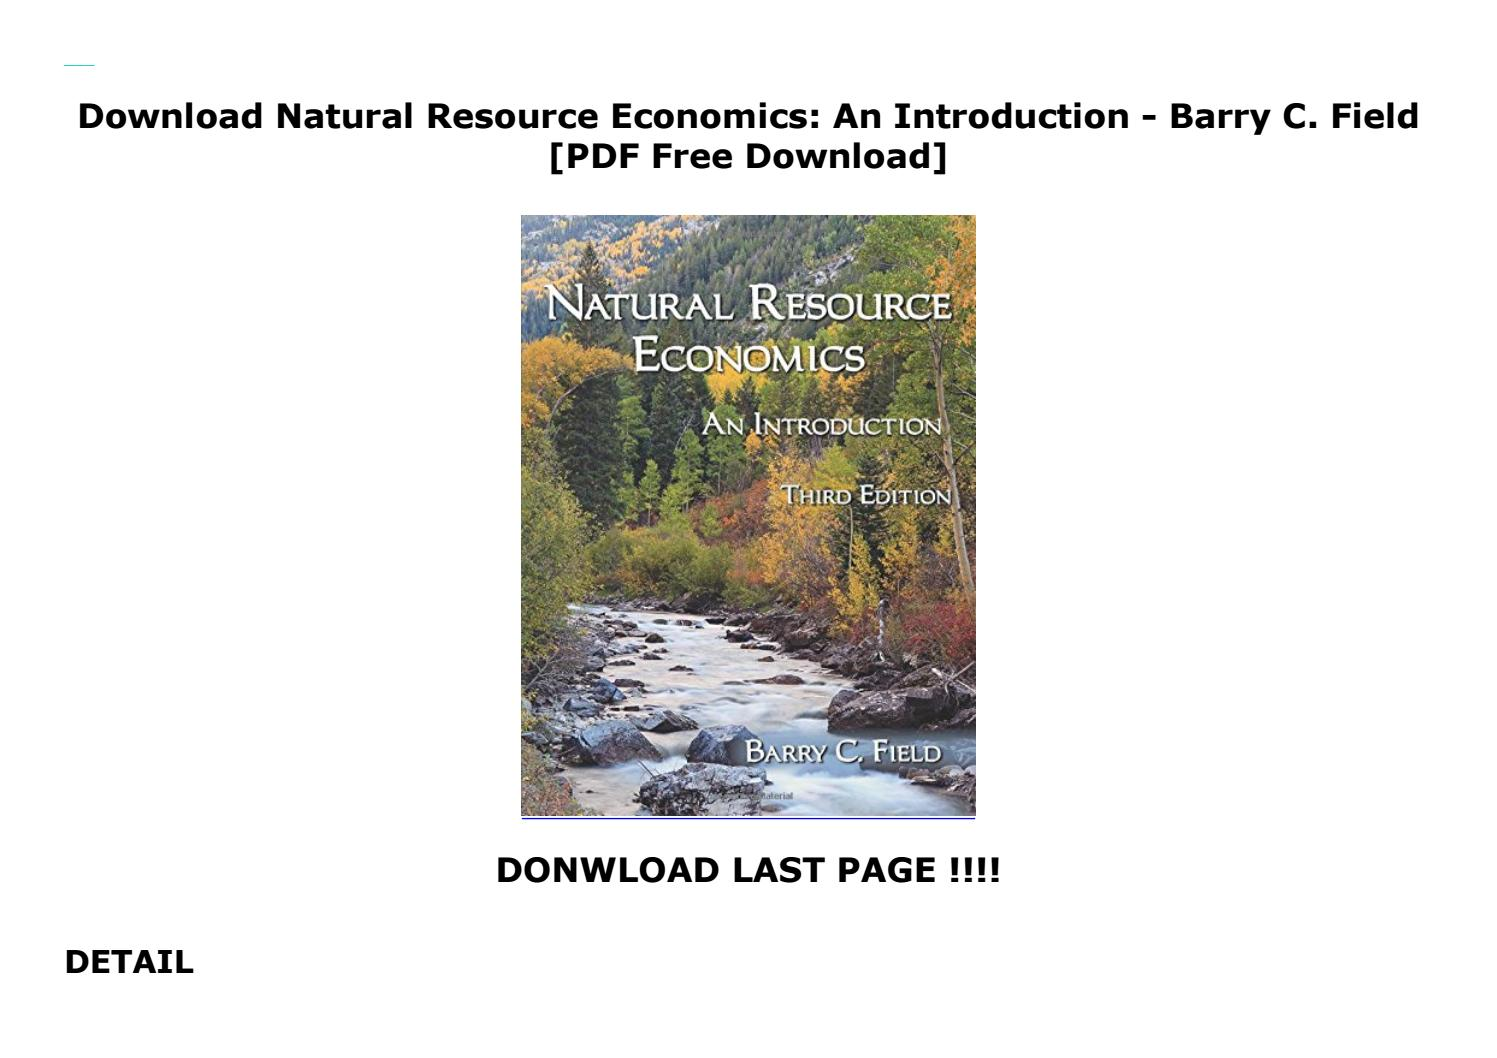 Download Natural Resource Economics: An Introduction - Barry